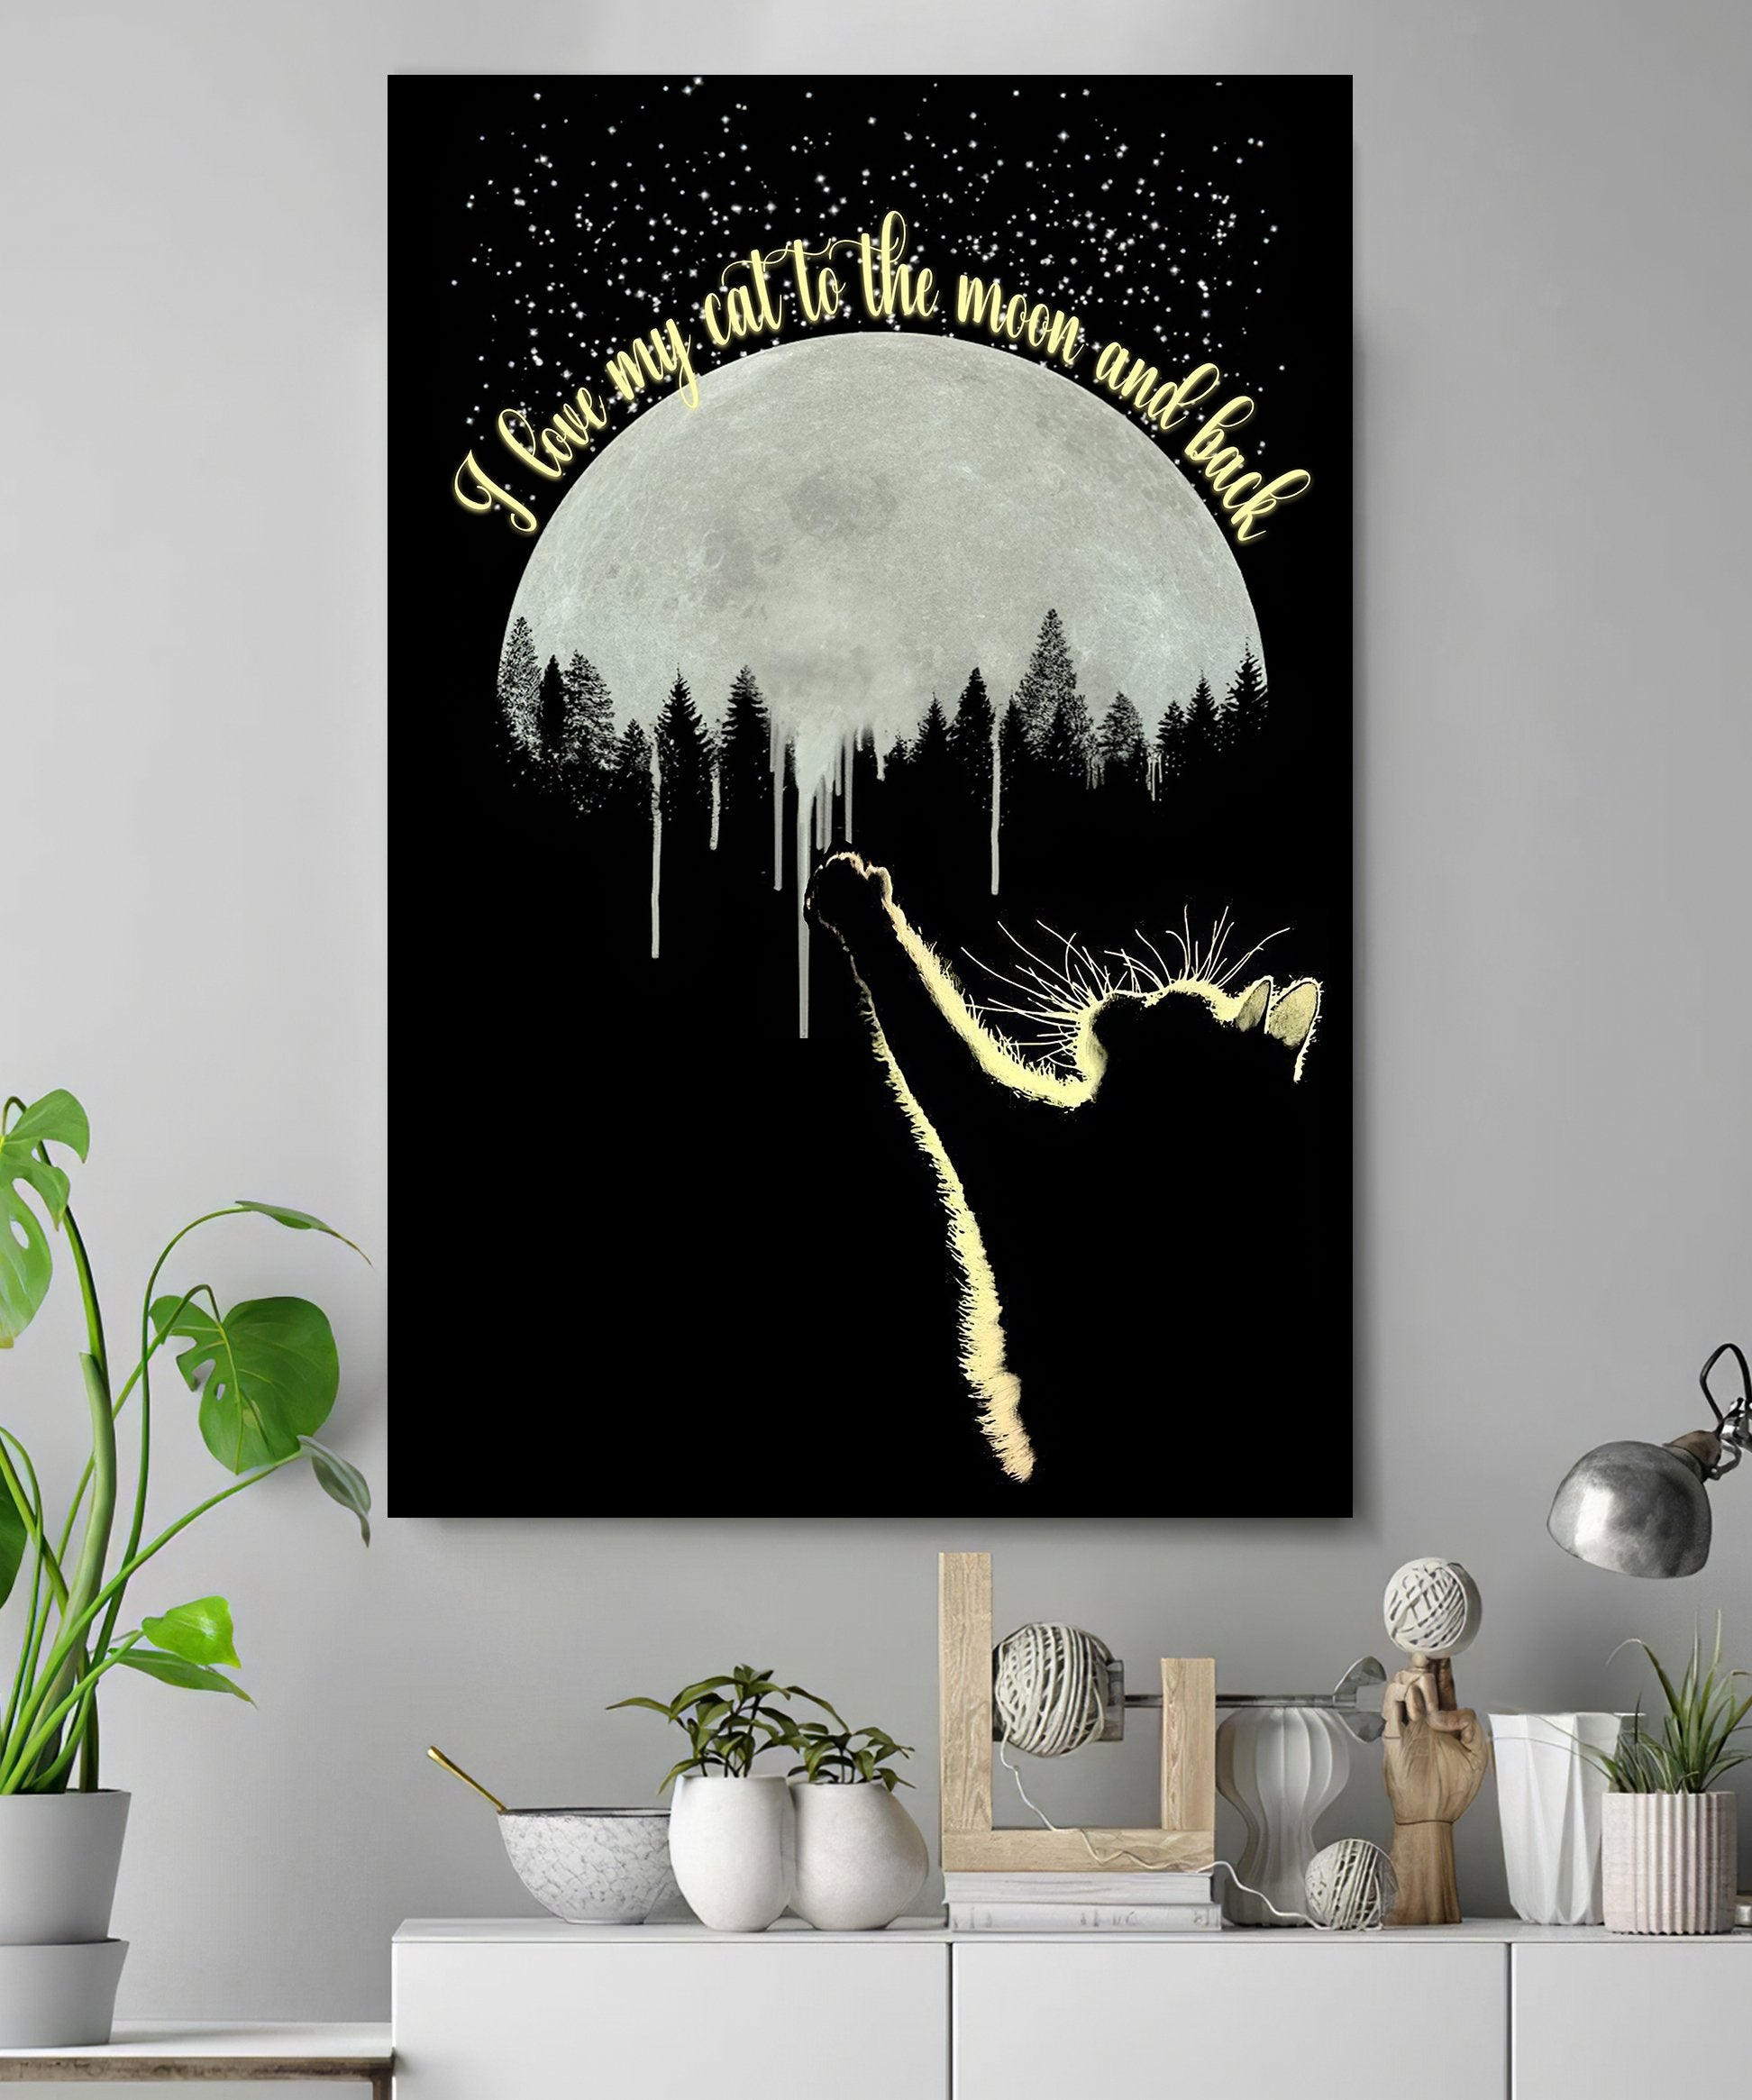 3D Canvas - I love my cat to the moon and back